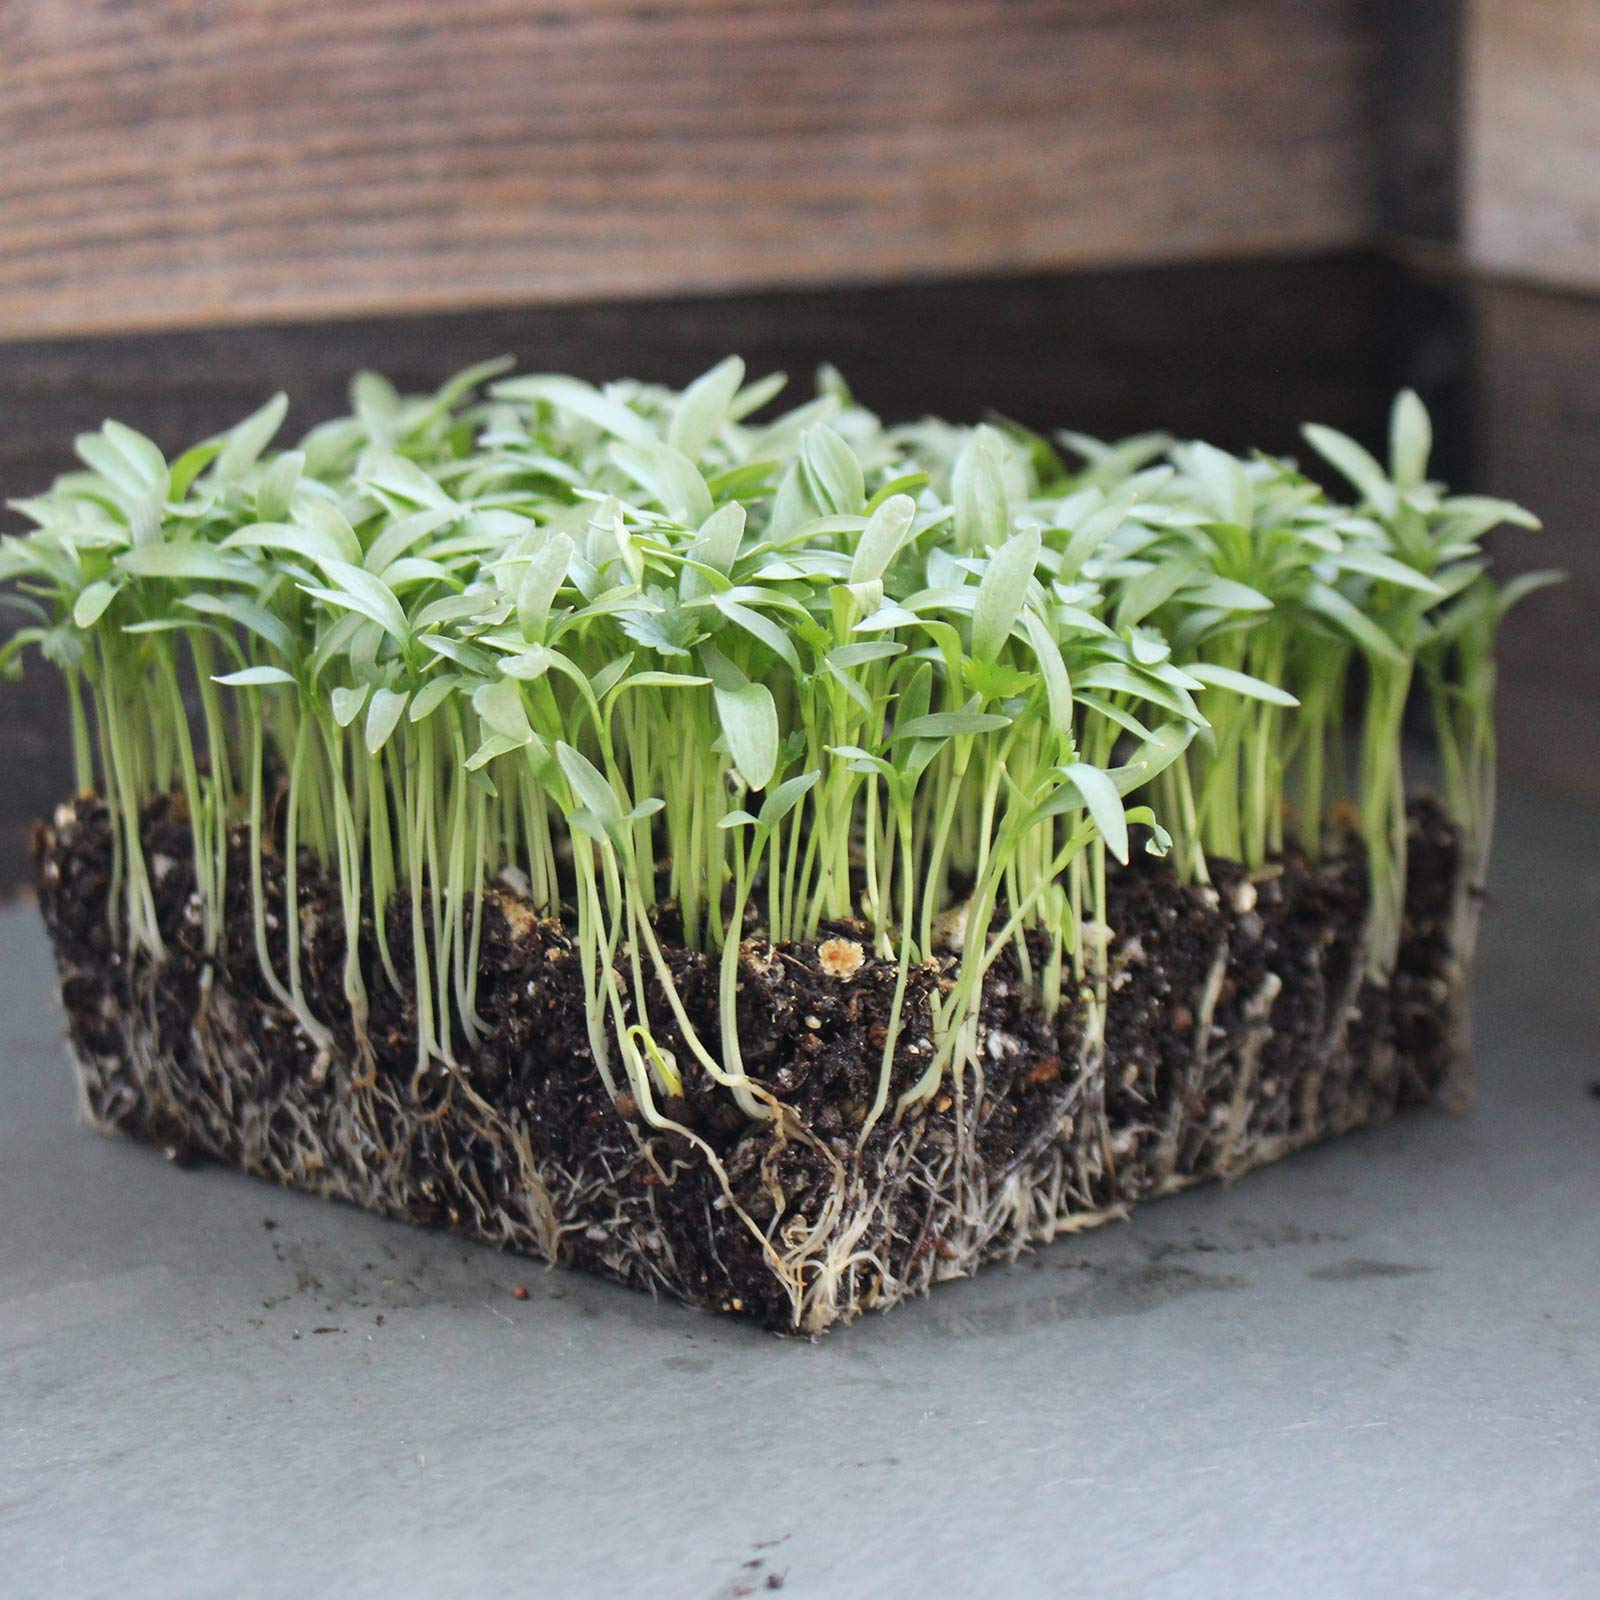 Soil Based Microgreens Seeds Assortment: Micro Greens Seed Collection: Sunflower, Buckwheat, Cilantro, Dun Pea, Rainbow Swiss Chard, Detroit Beets by Handy Pantry (Image #4)